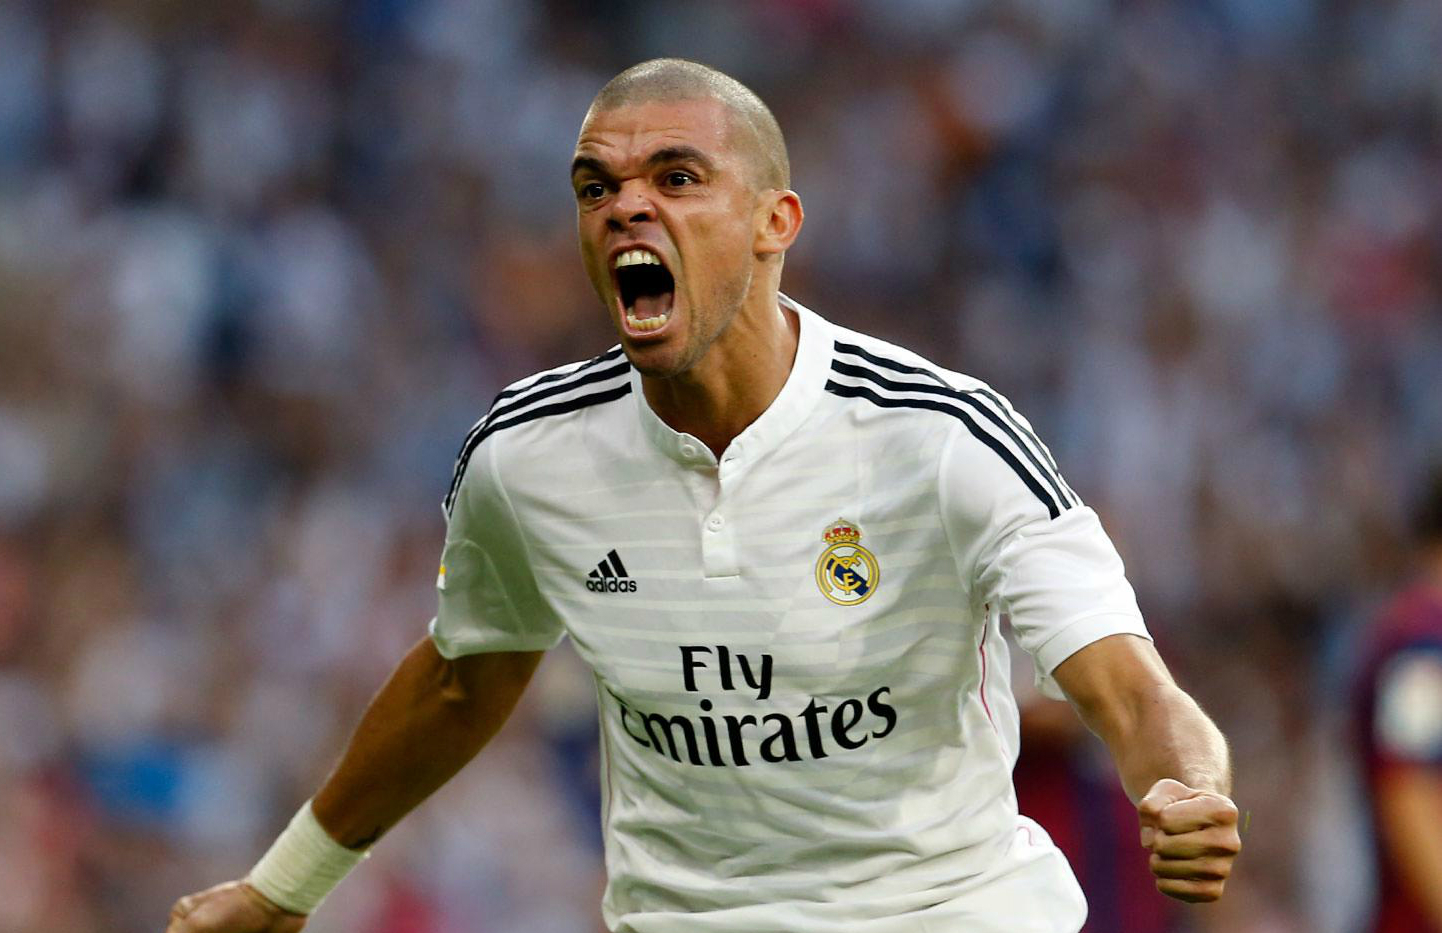 Pepe (Portugal y Real Madrid)